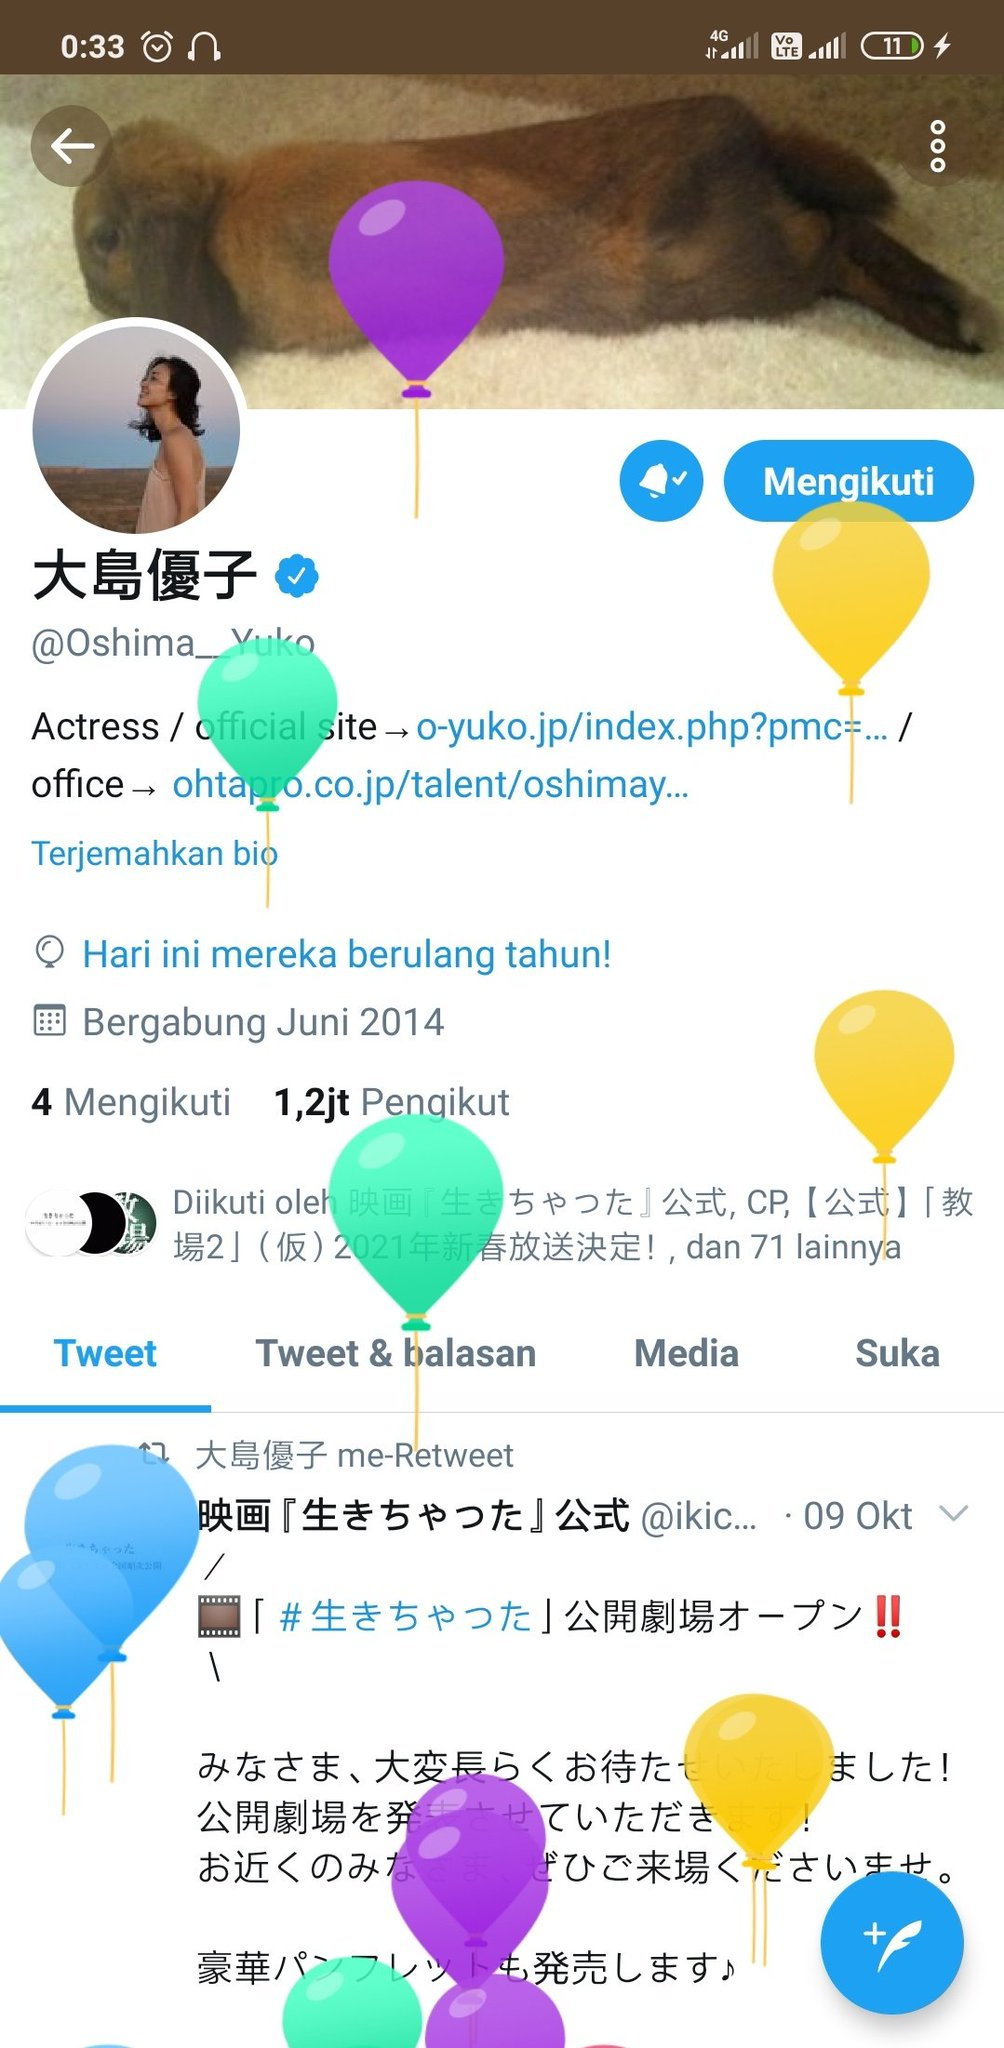 your message profiles have balloons, are you still afraid of balloons? Hihi  Happy birthday luv